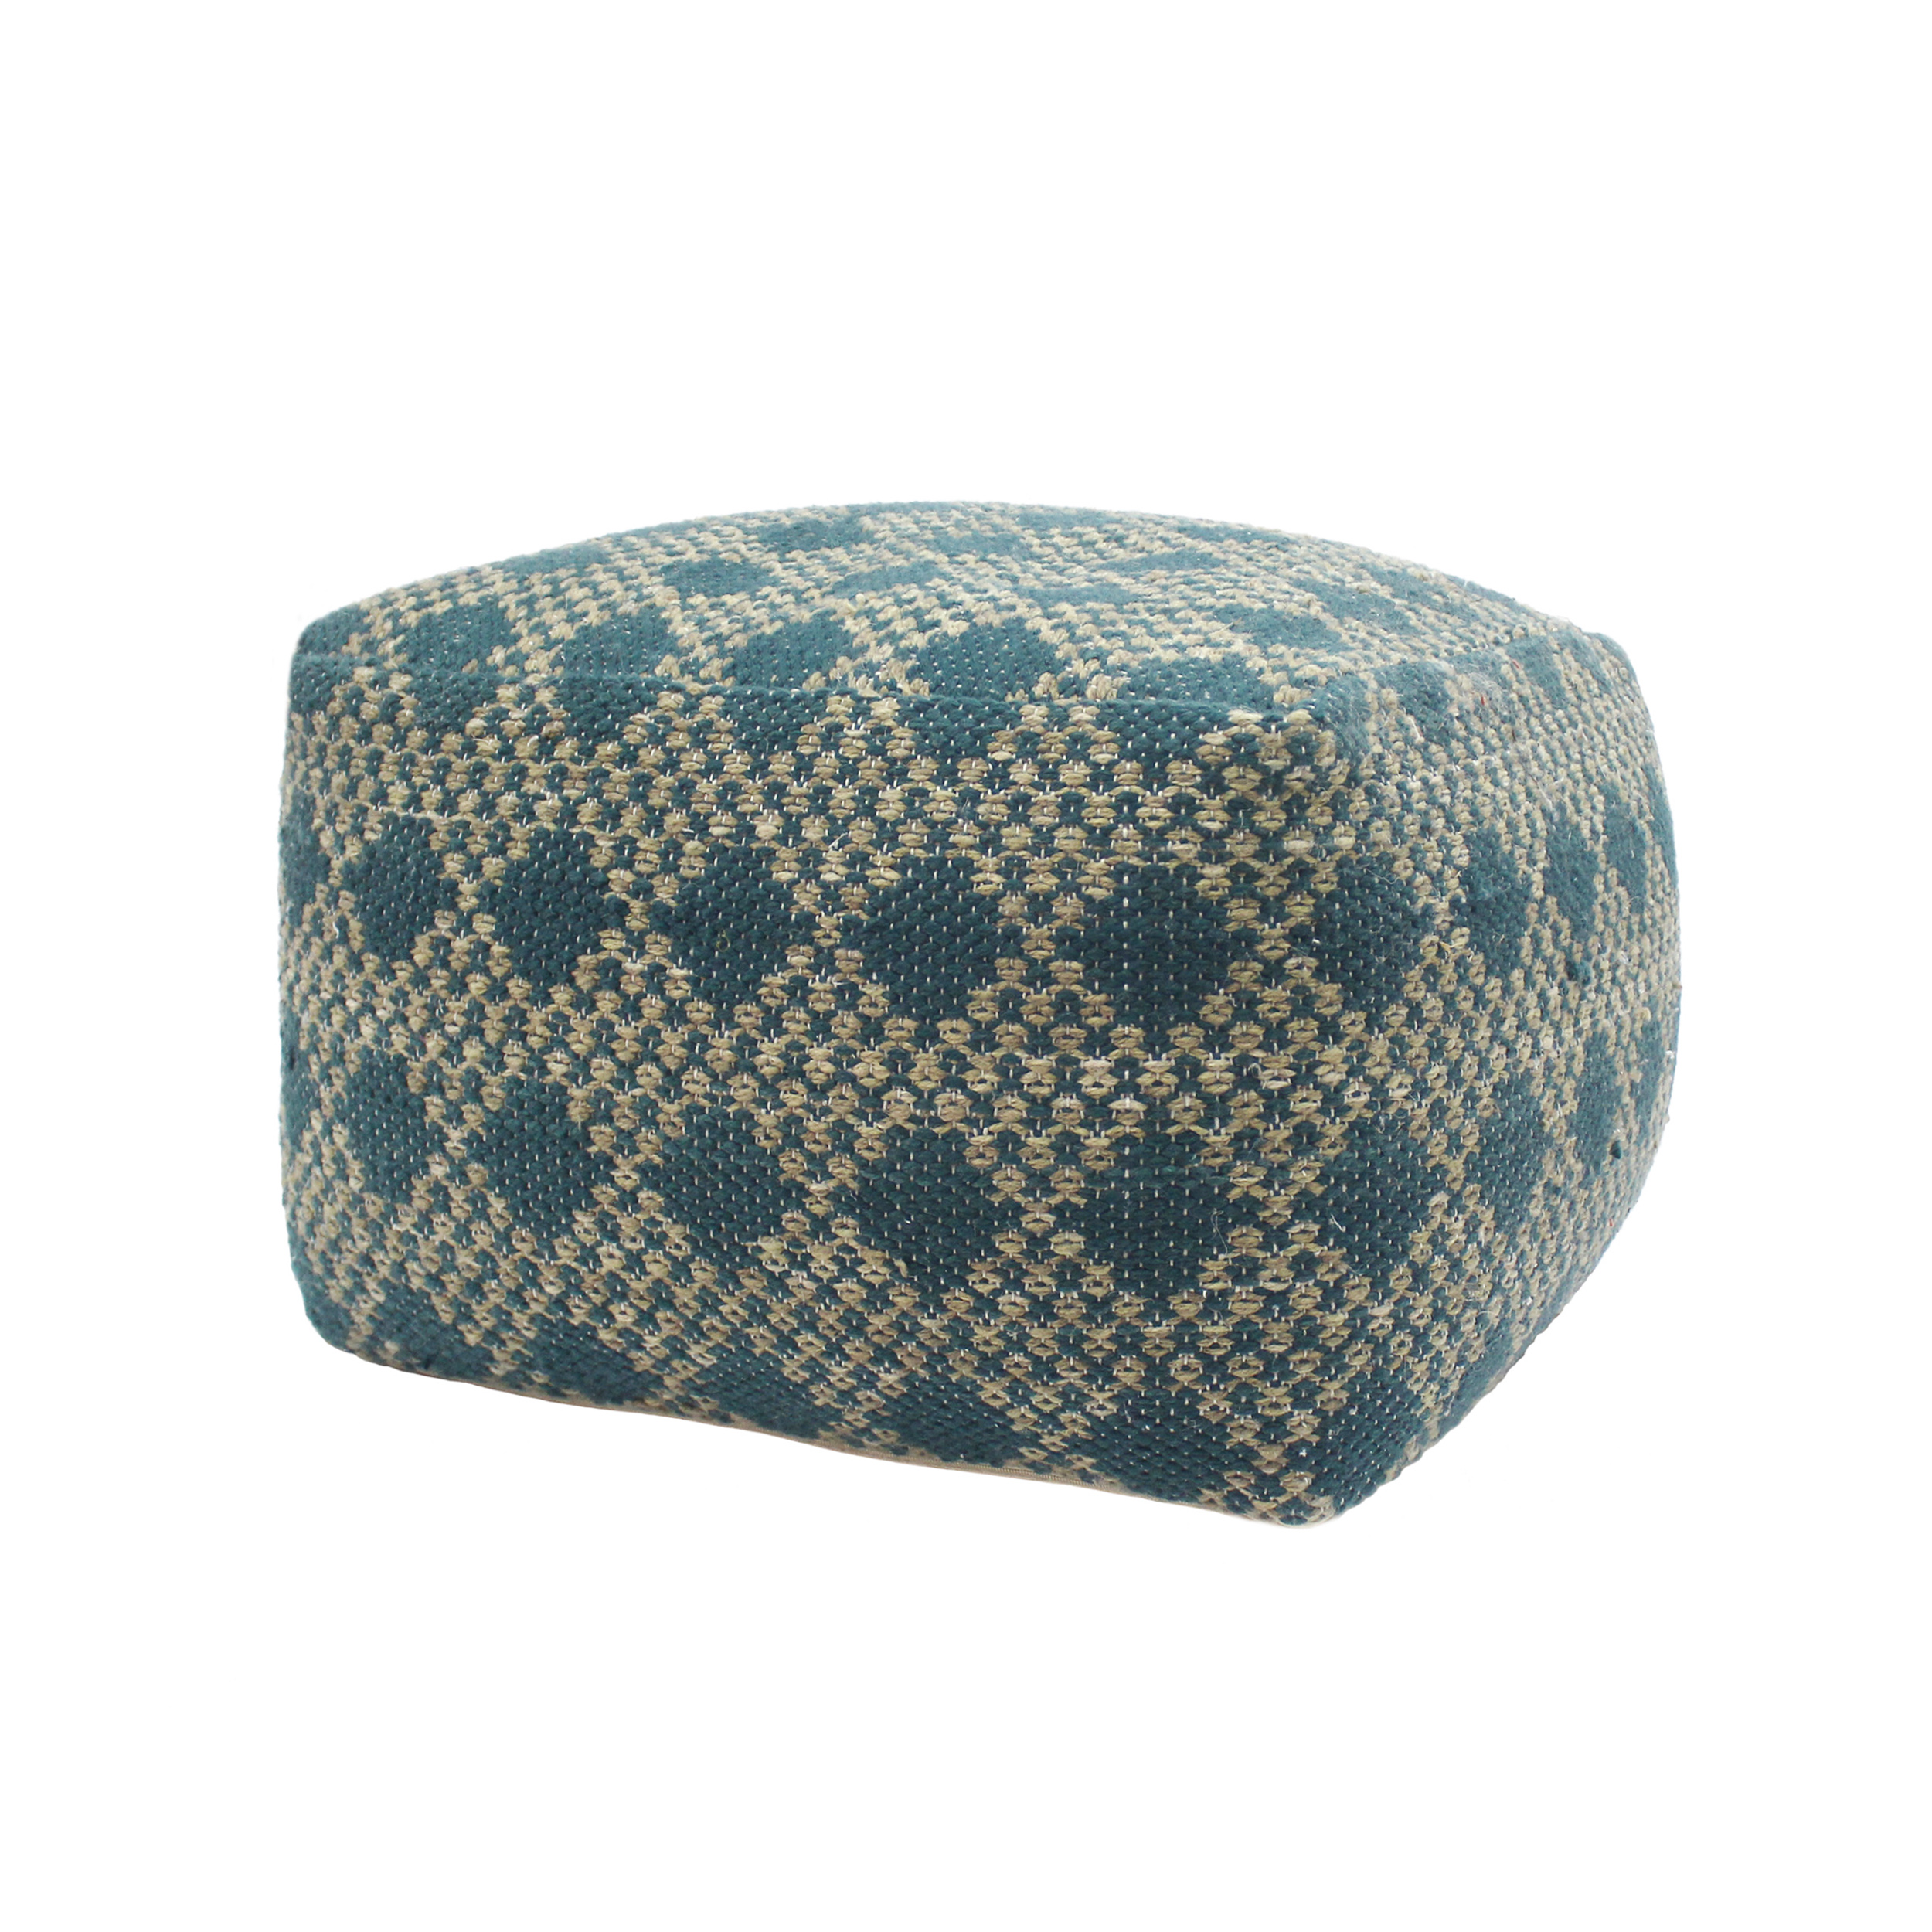 Edison Outdoor Large Fabric Rectangular Casual Pouf, Beige, Teal